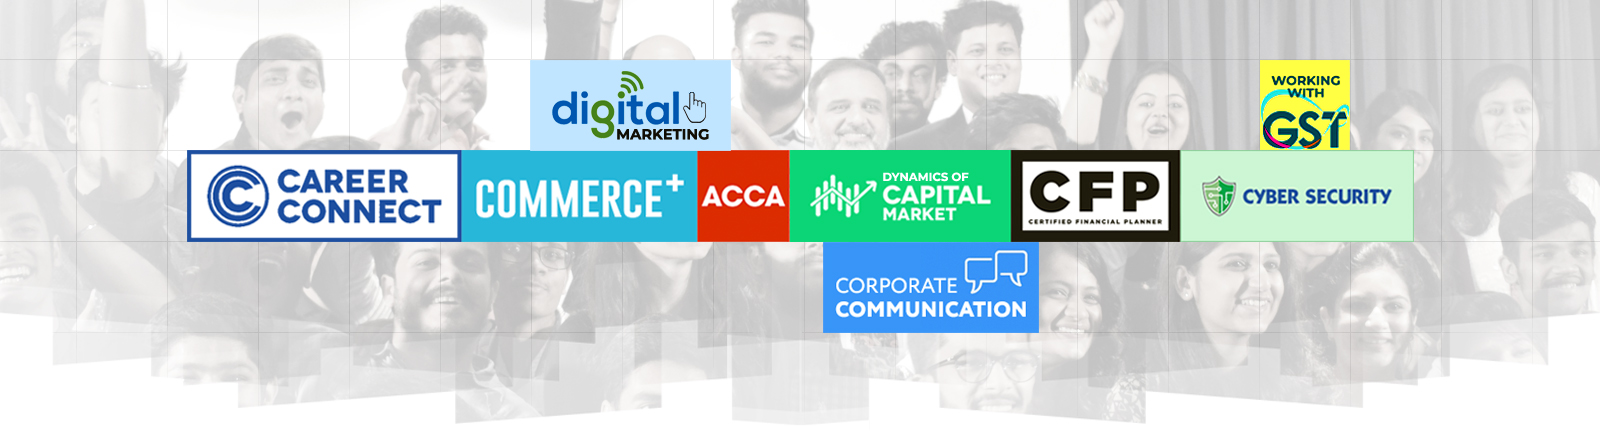 career-connect-banner